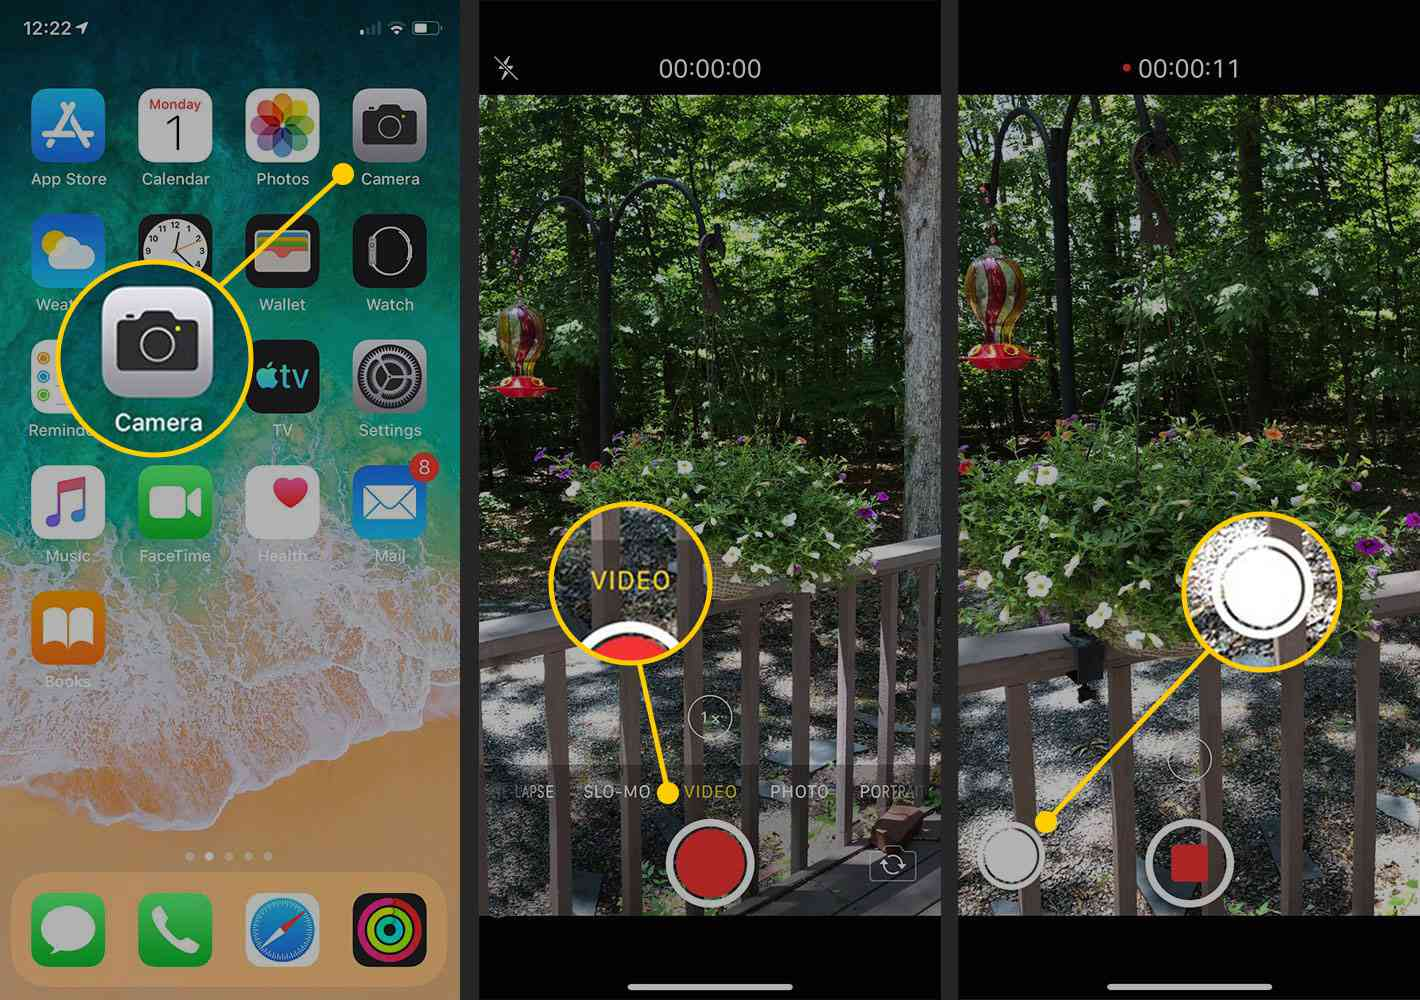 How to take a picture while shooting video in iOS